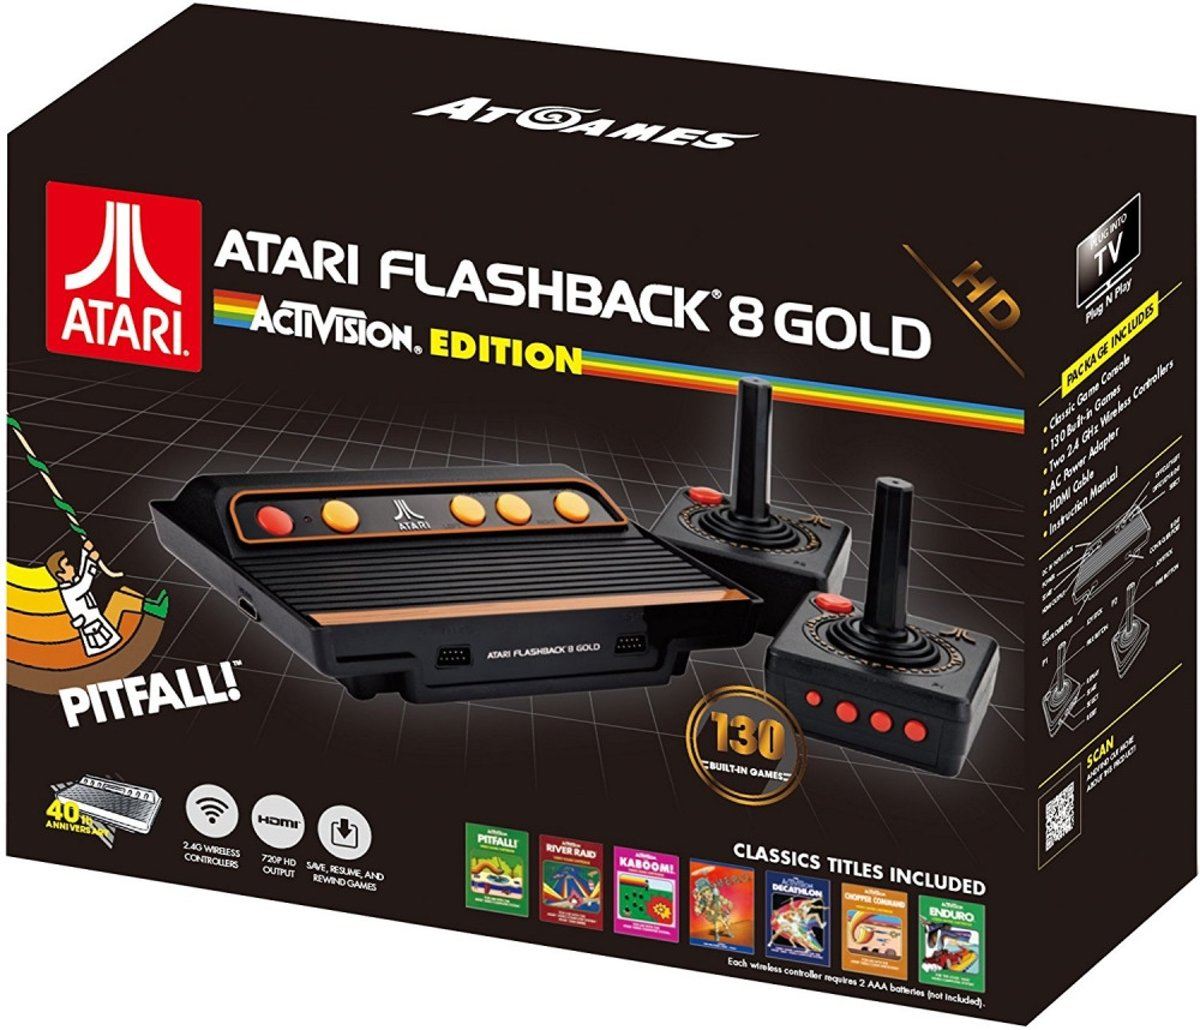 Atari Flashback 8 Gold HD Game Console (Activision Edition)